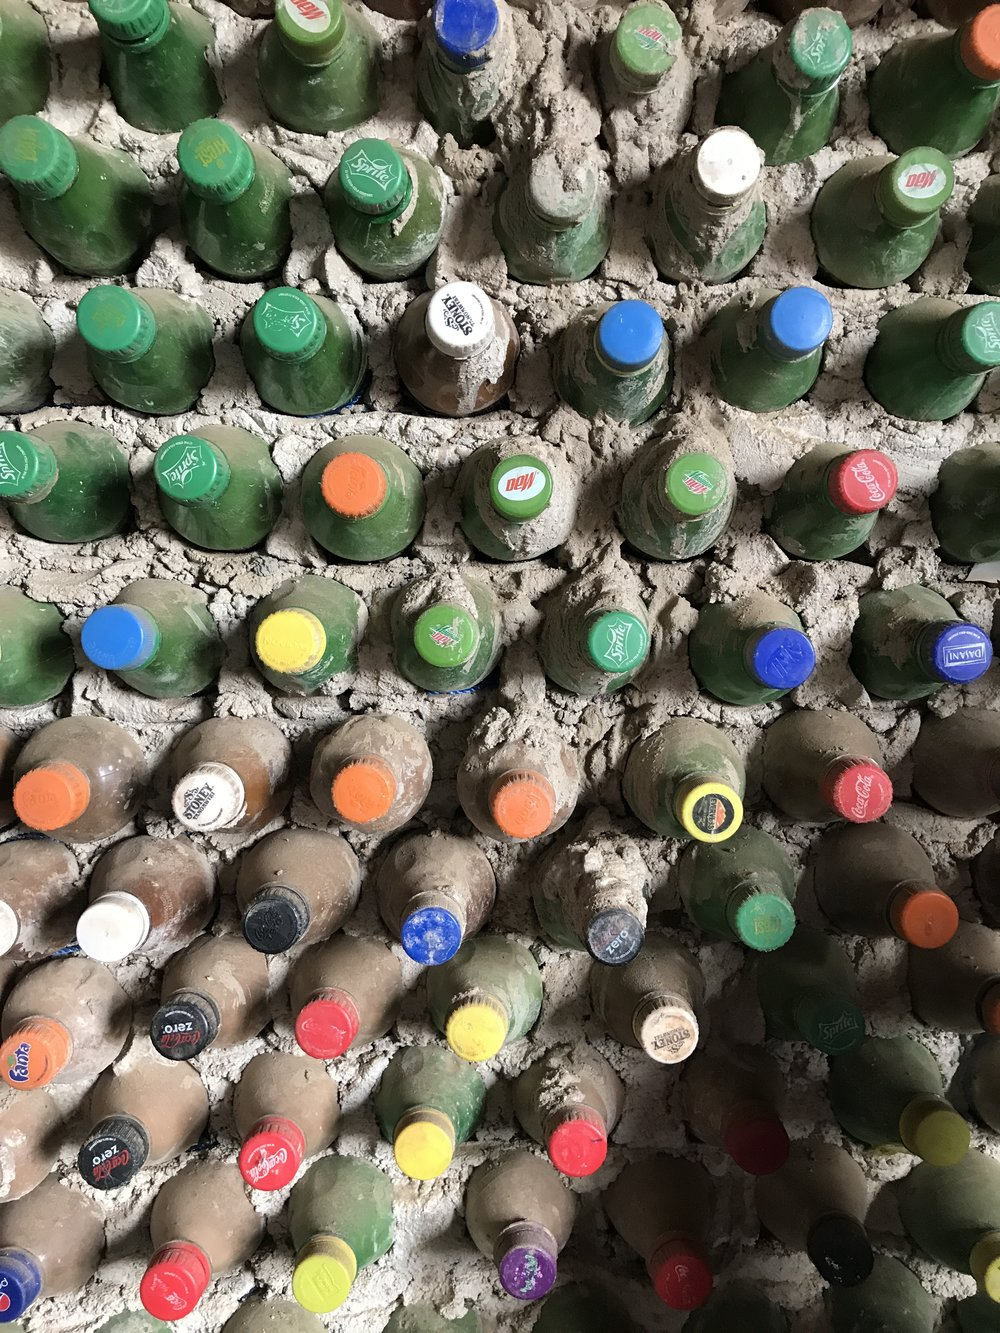 One of the leaders of Opprtunigee, Patrick, donated his own land for the artist collective building. They filled soda bottles with cement and made beautifully colorful walls!